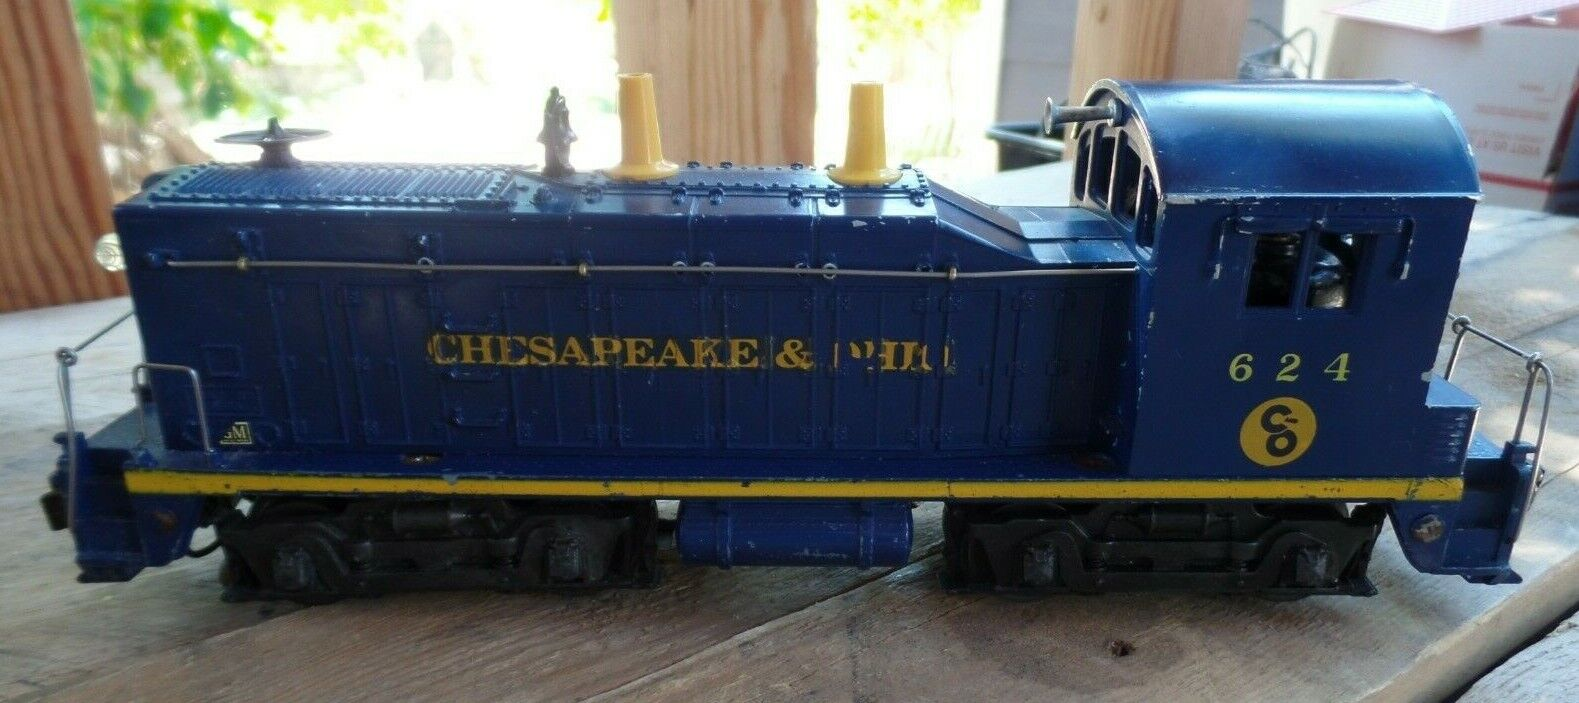 Lionel O Scale Chesapeake & Ohio 624 Diesel Switcher Engine Loco Made in U.S.A.